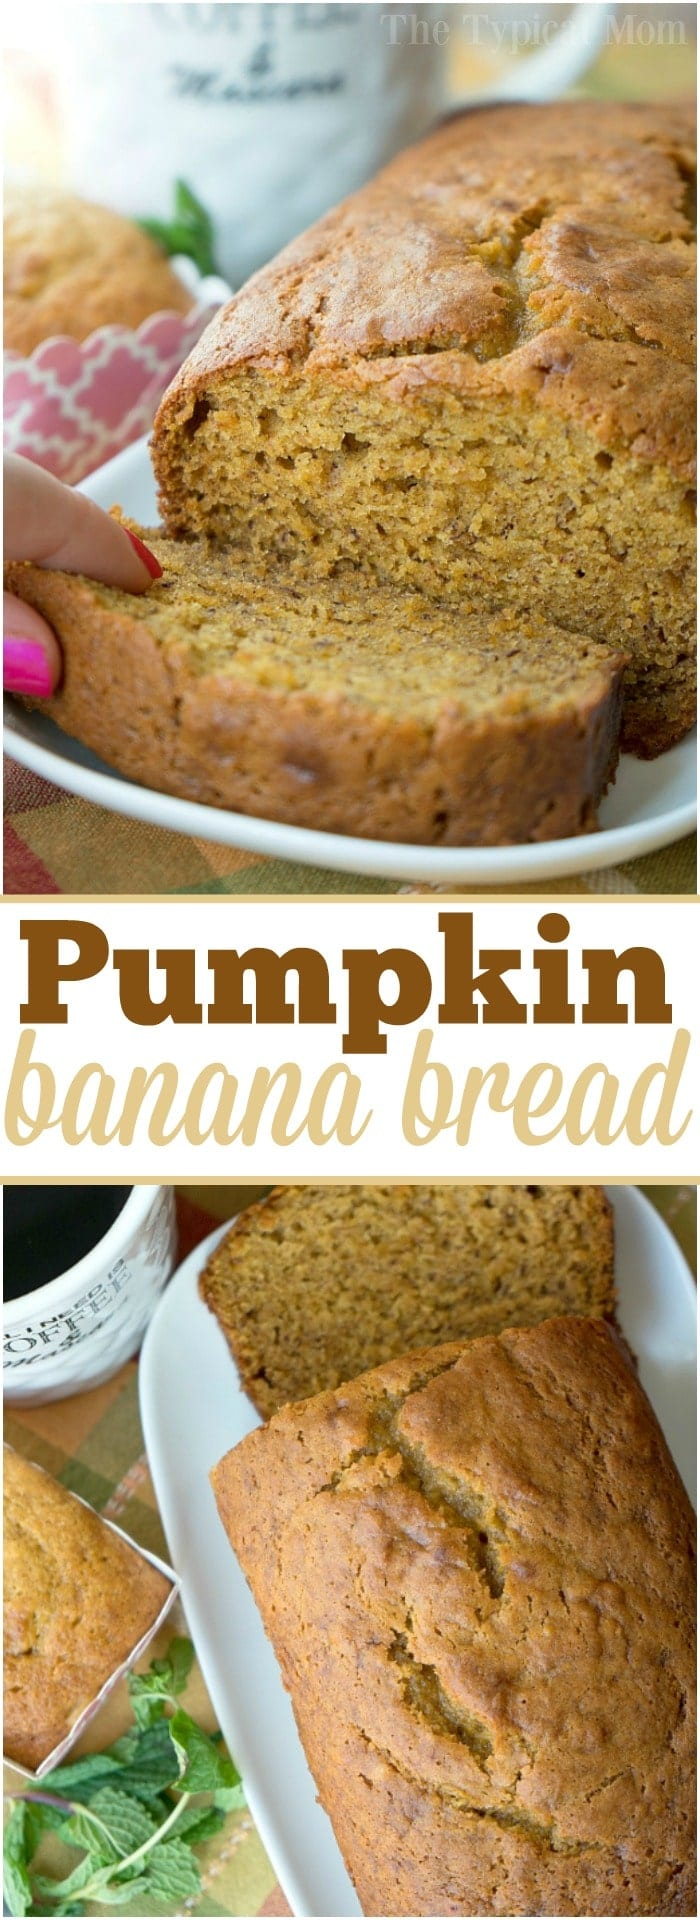 The most delicious pumpkin banana bread recipe is here! Perfect breakfast, brunch or dessert paired with a cup of coffee this holiday season or year round. If you love banana and pumpkin bread this is a great twist on your traditional sweet bread recipe. Perfect for any occasion. #folgers #banana #pumpkin #bread #recipe #overripe #bananas #recipes #moist